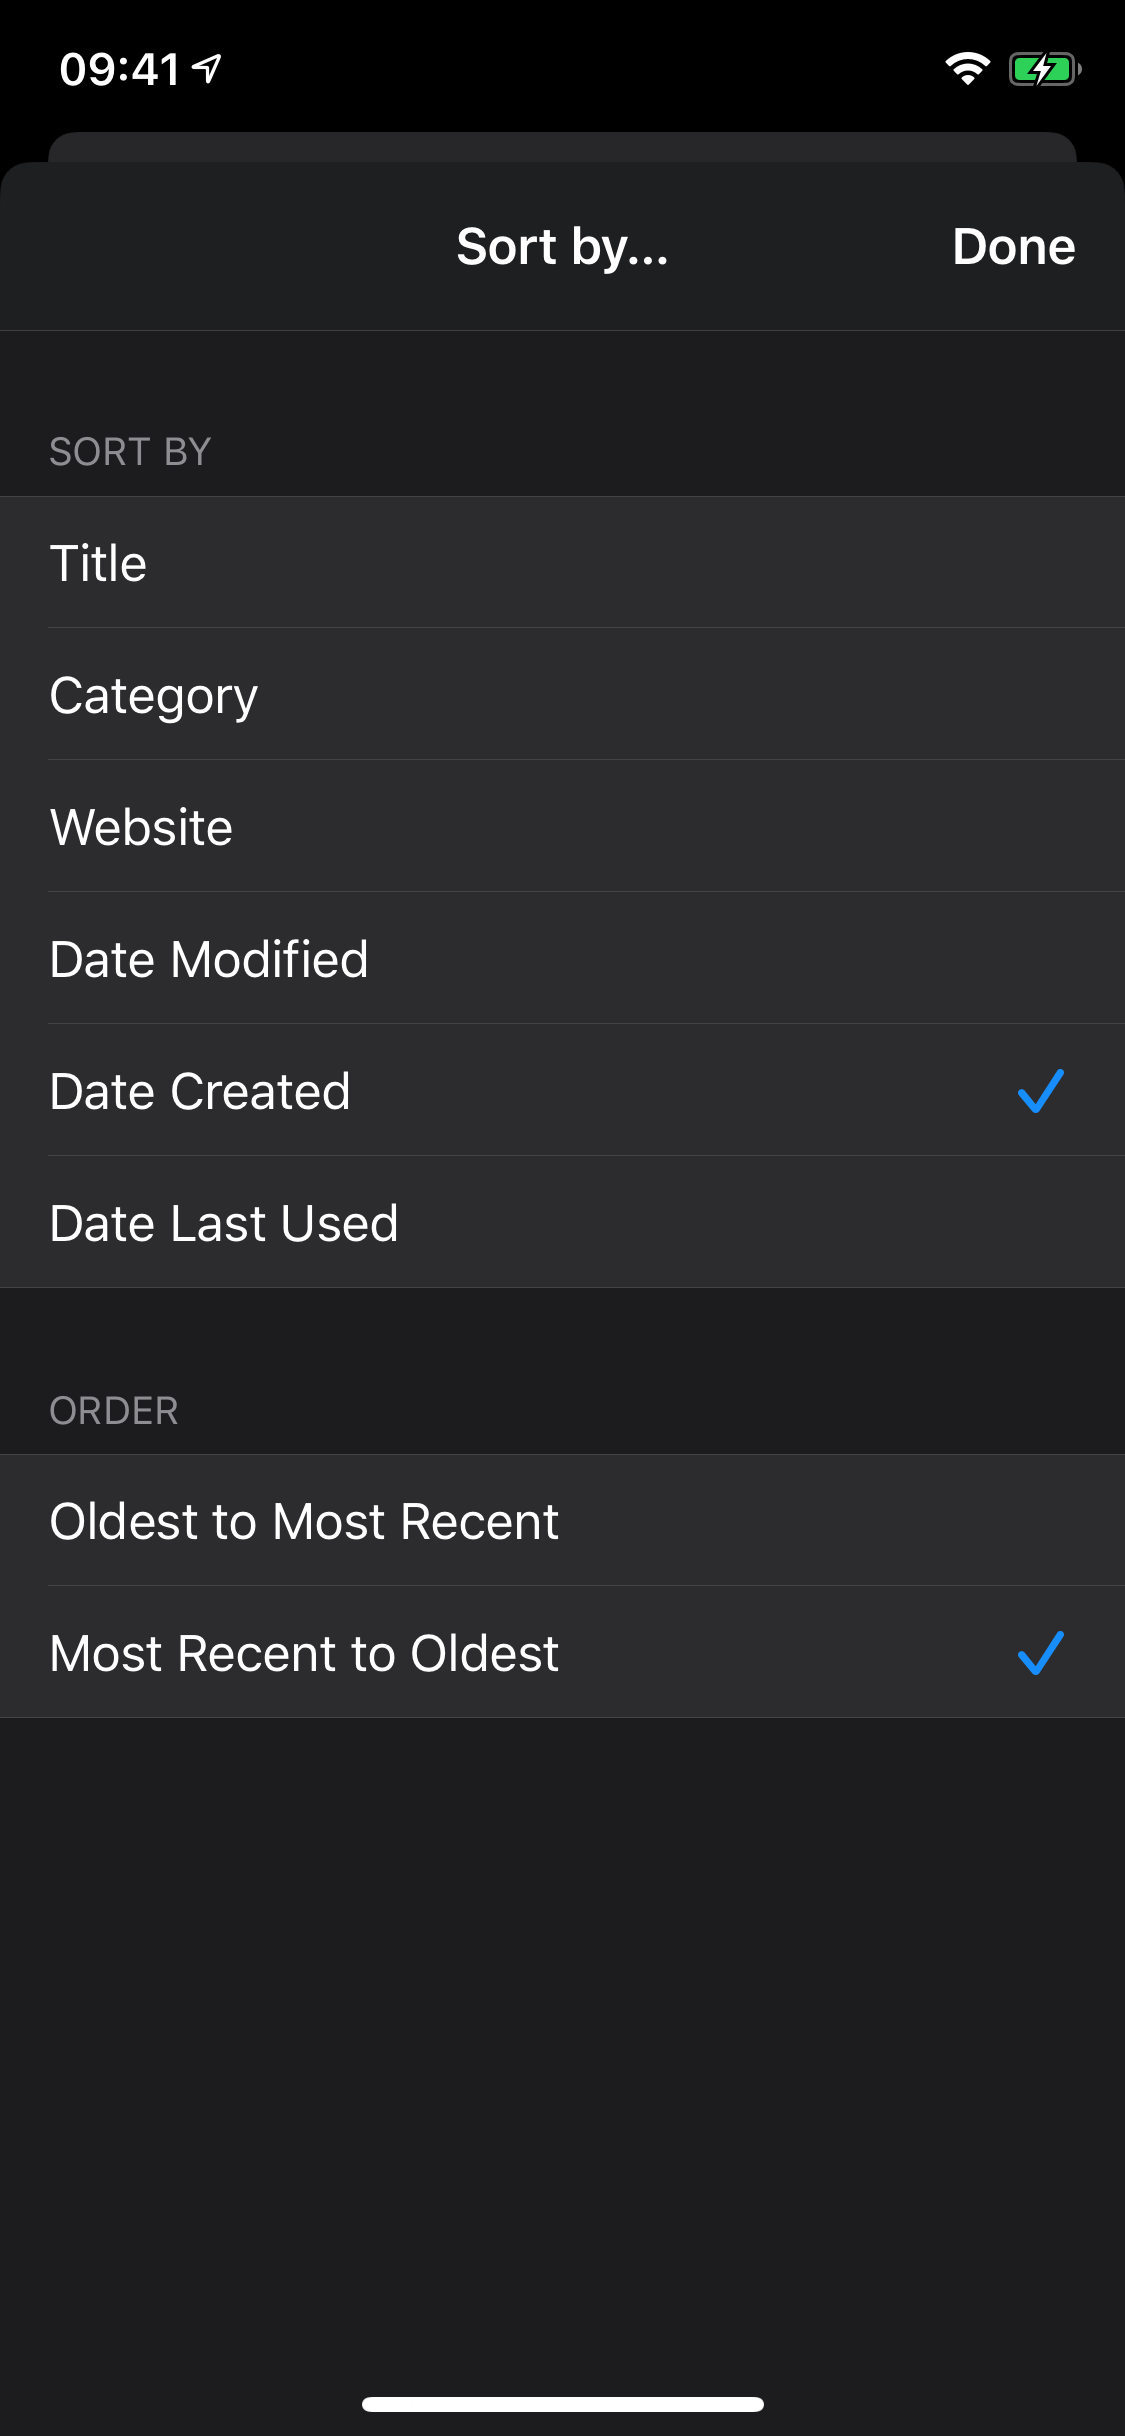 Sort by Date Created